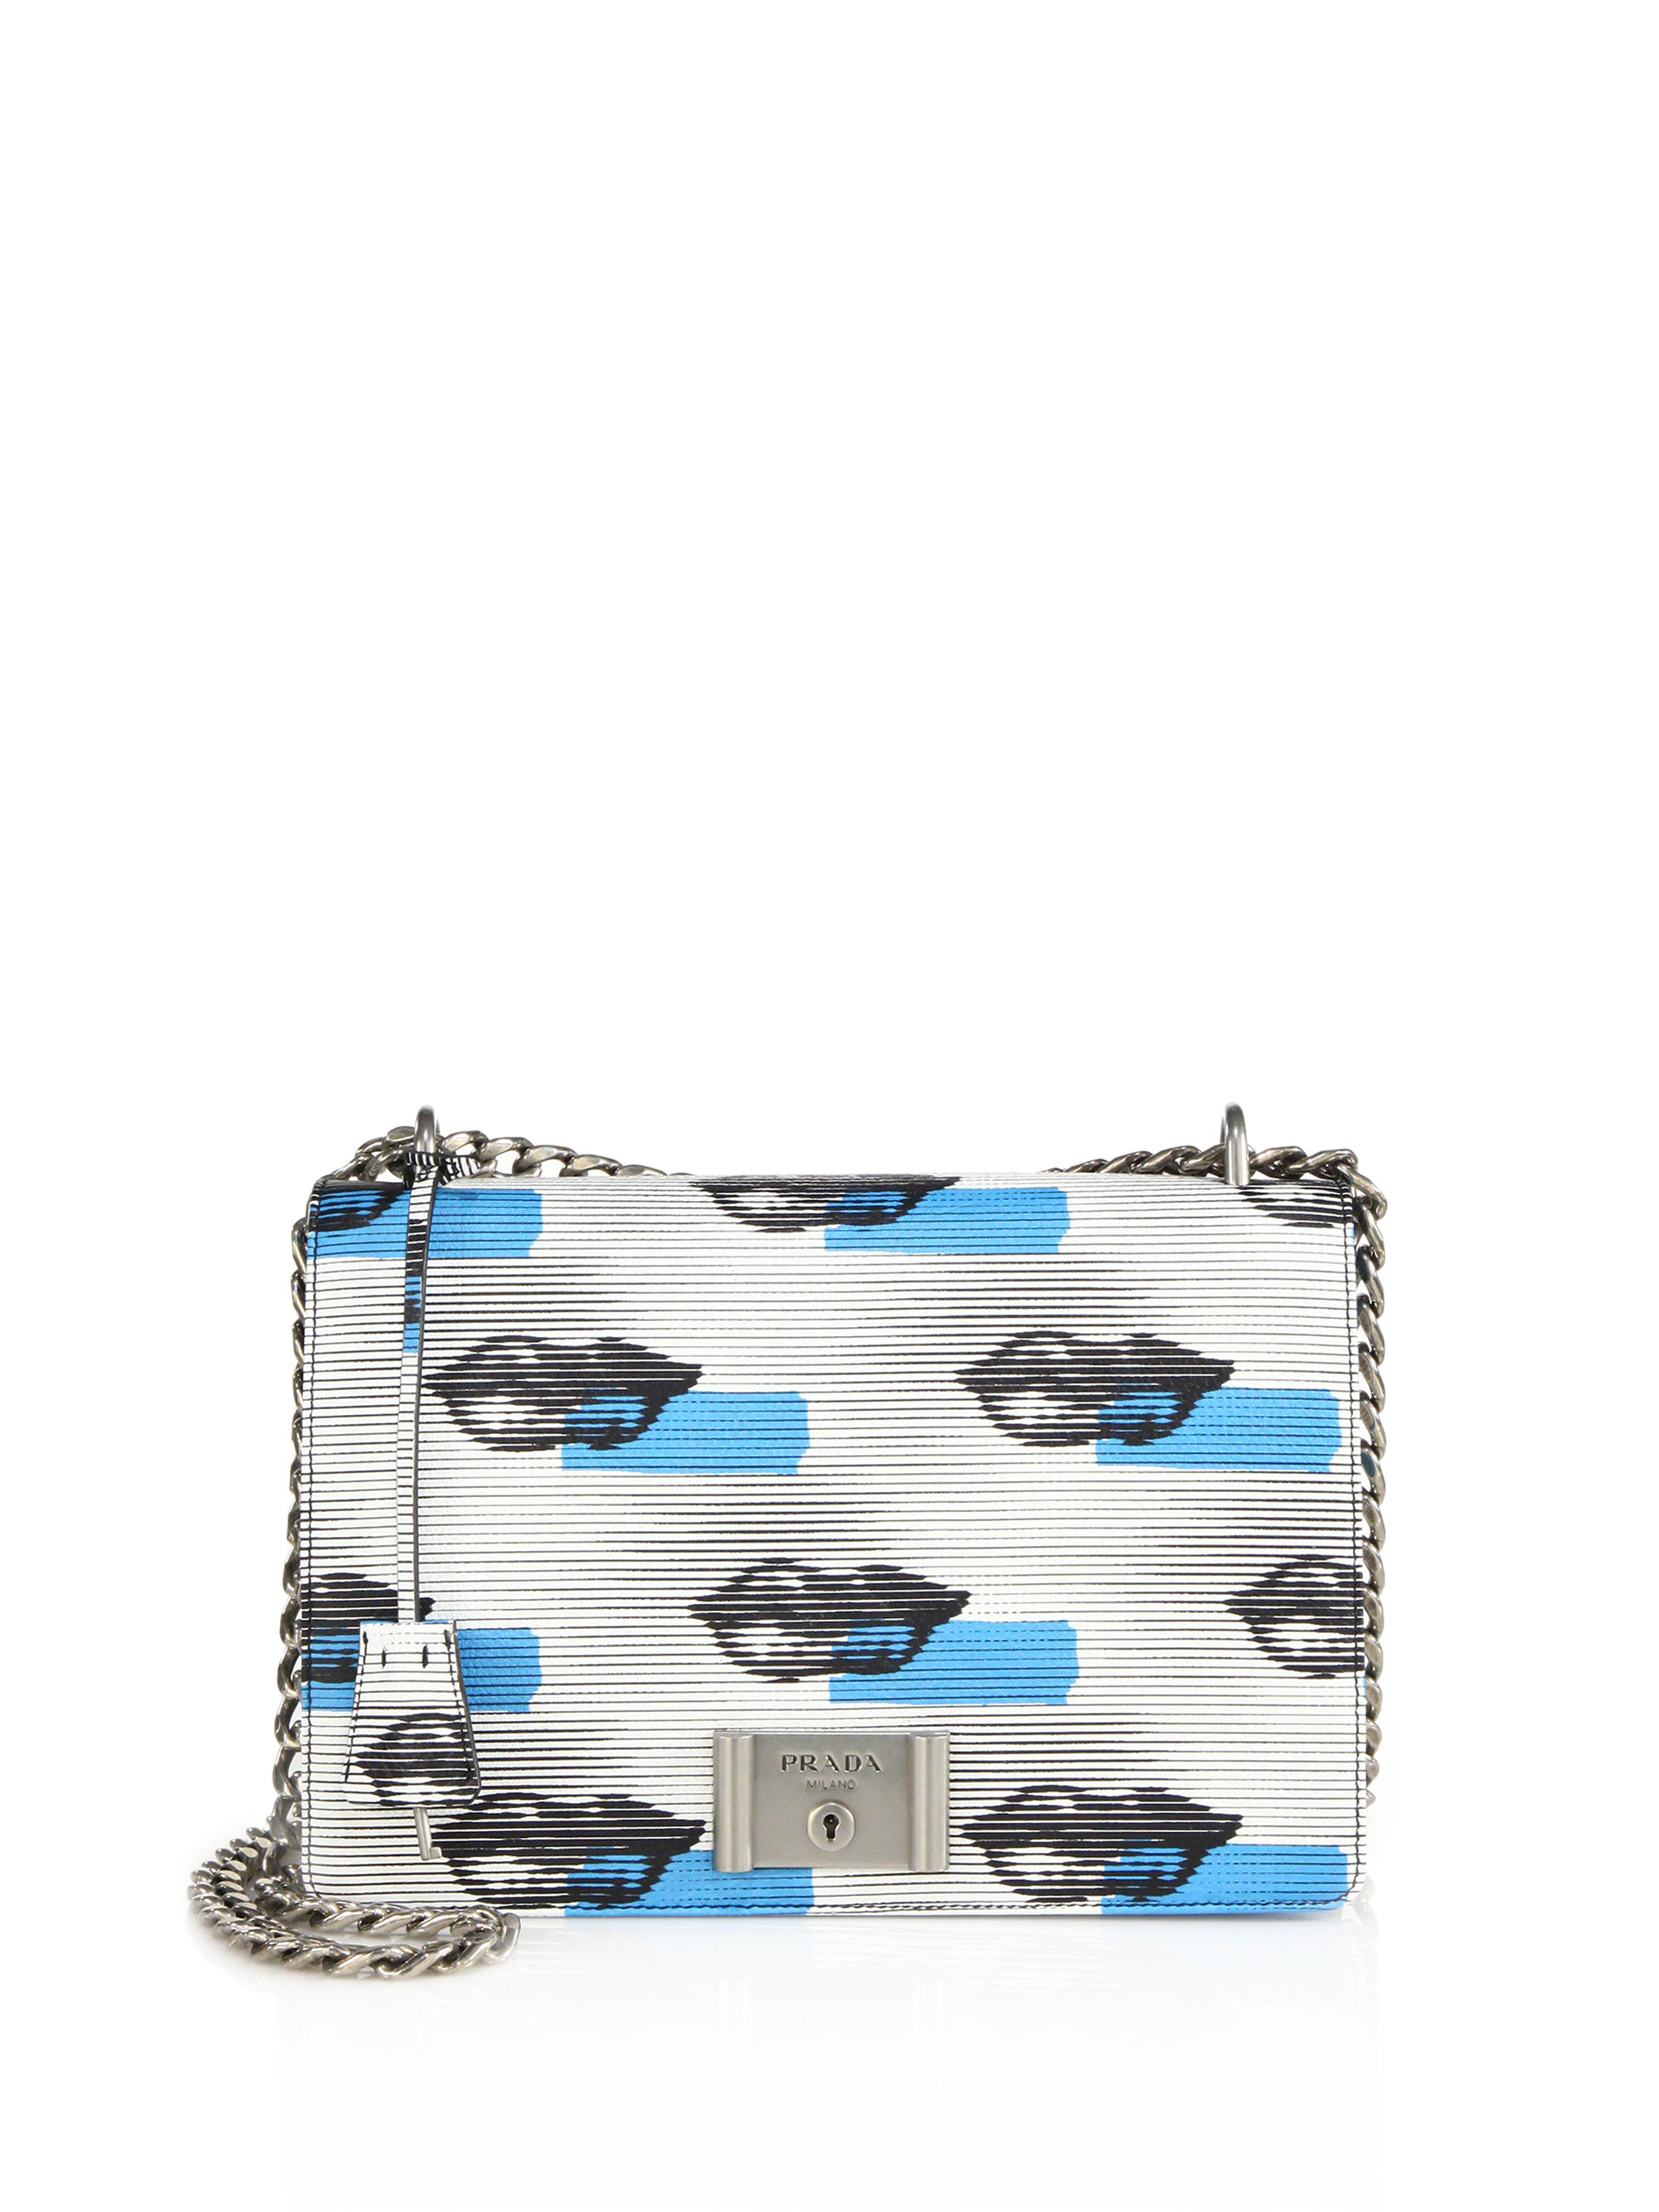 prada white shoulder bag